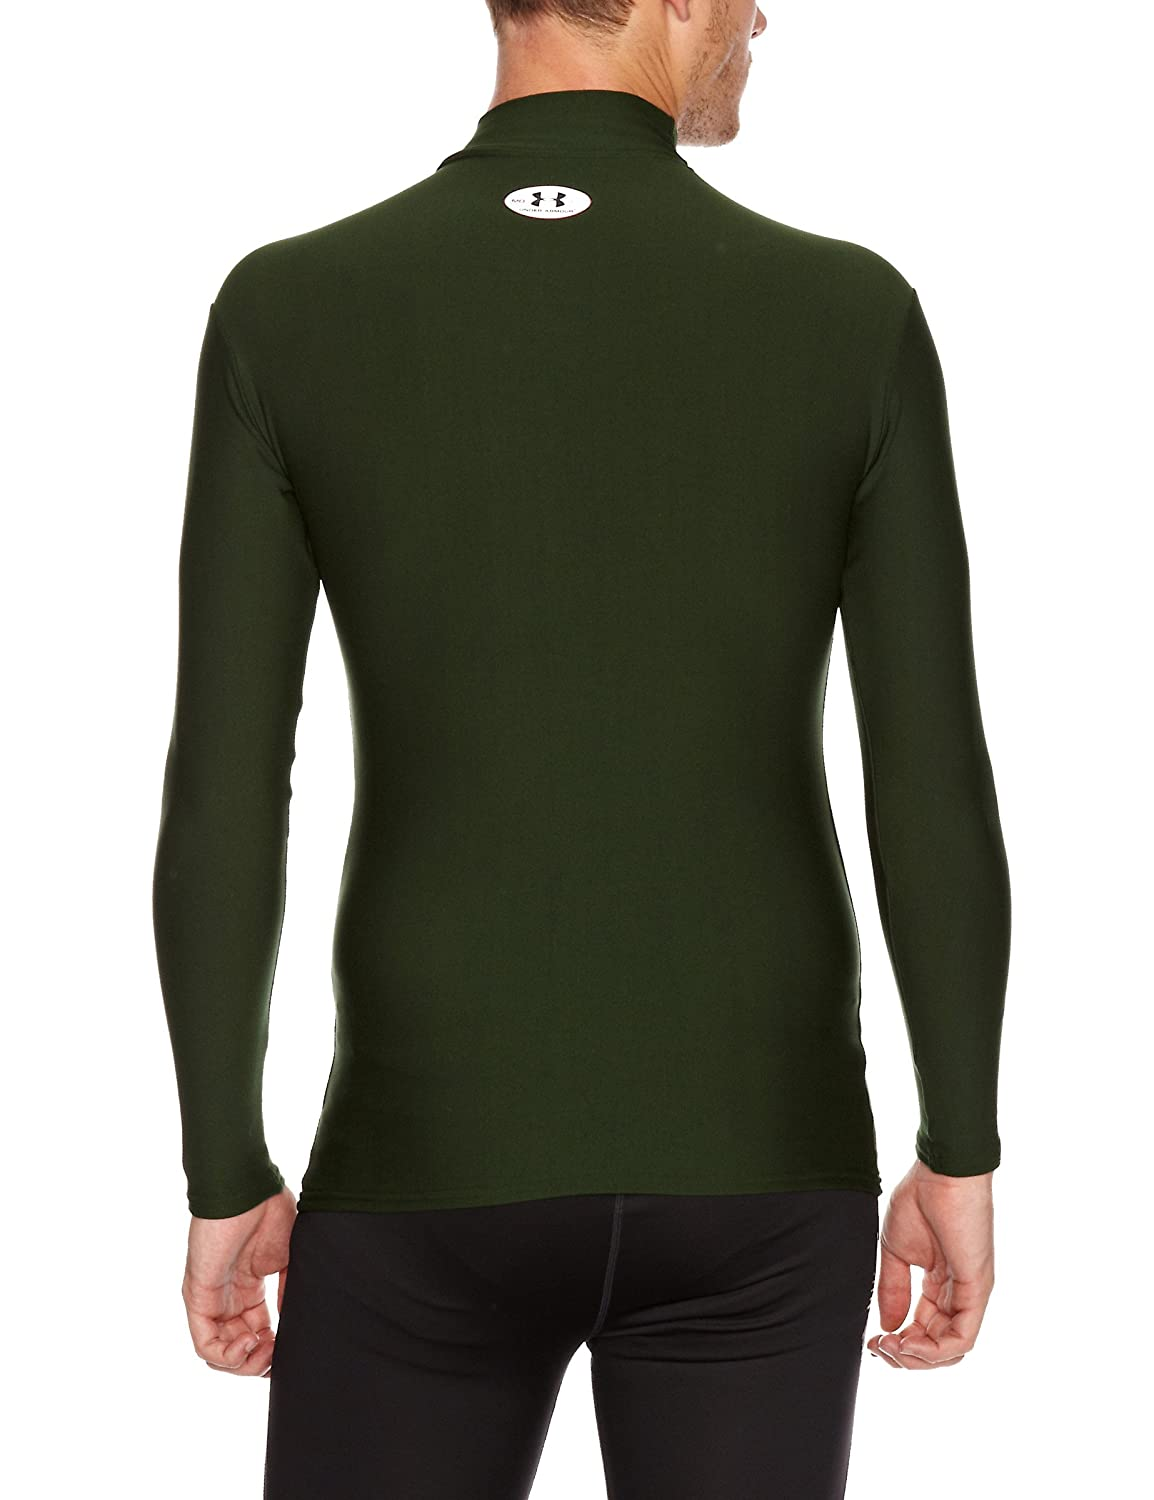 Under Armour Aggression ColdGear Mock Neck Top